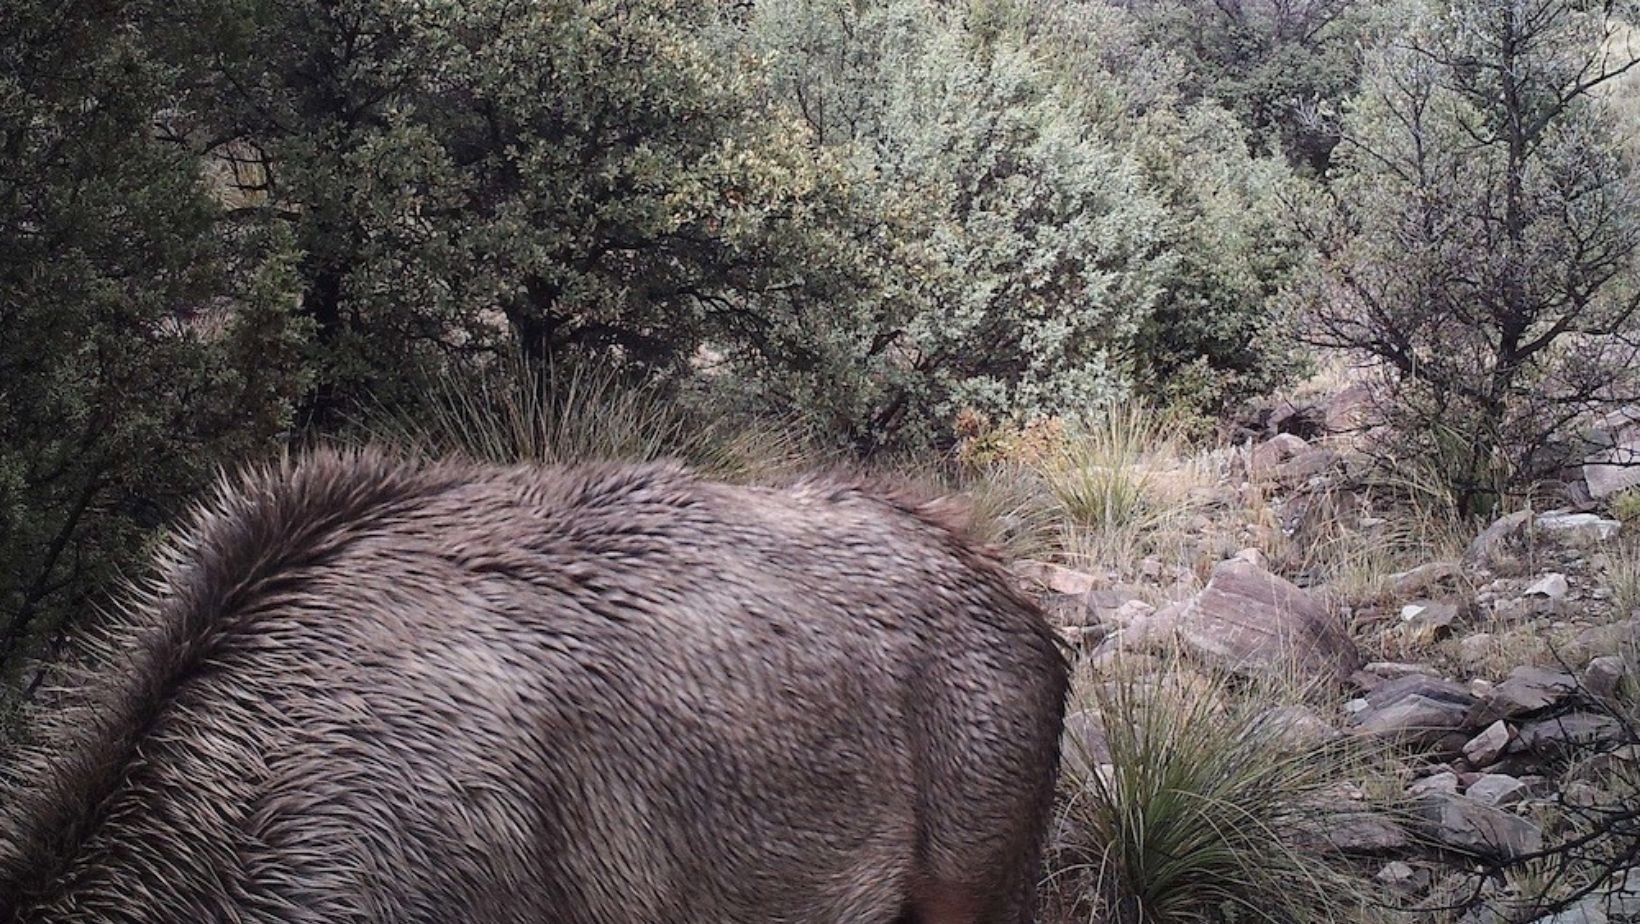 courtesy of the rio mora national wildlife refuge.jpg?resize=1200,630 - There Is A Mountain Lion In This Photo, Can You Spot It?